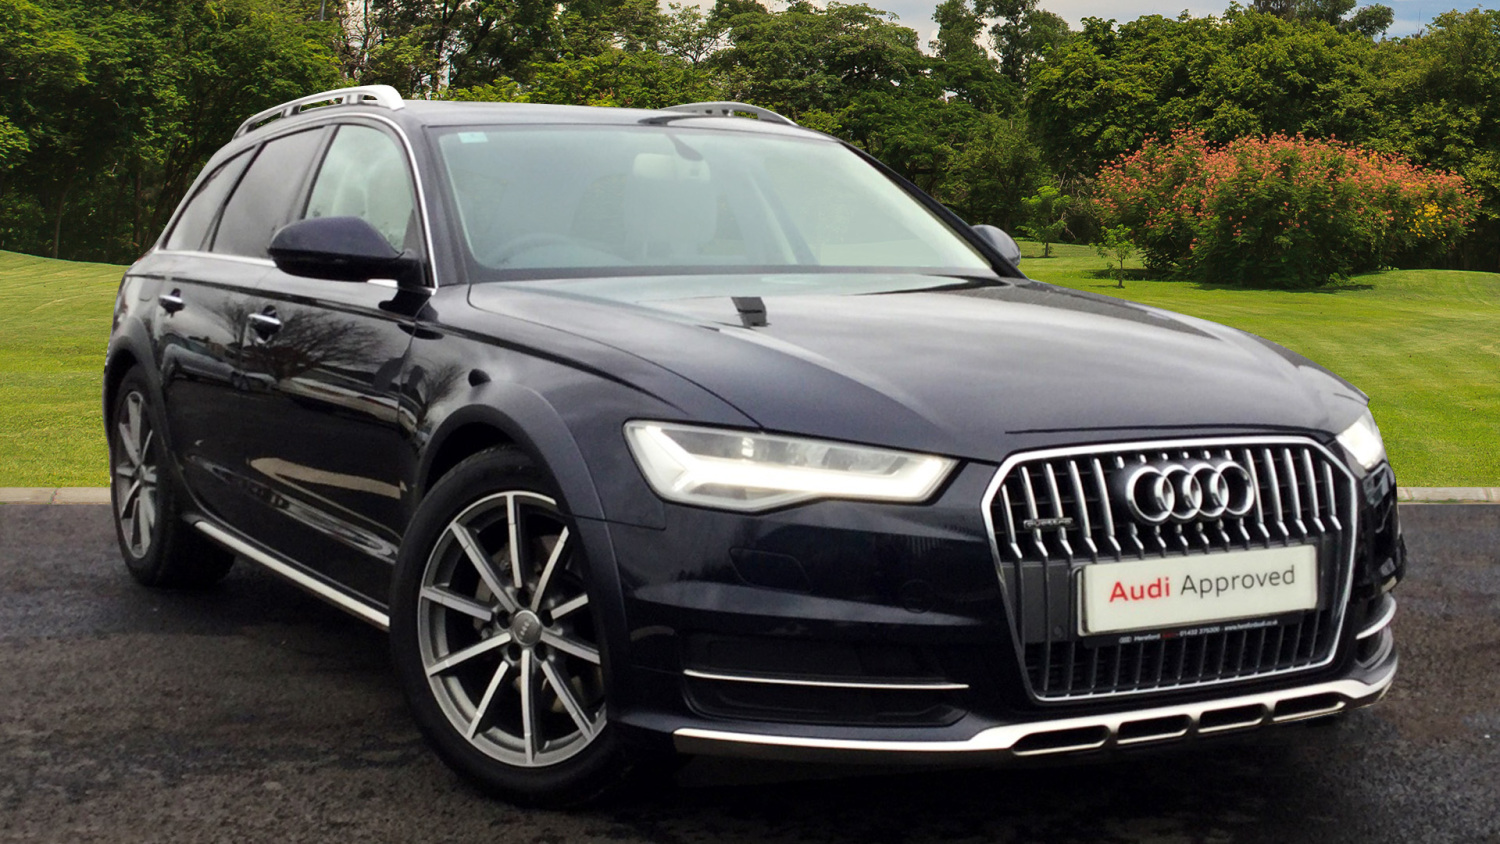 used audi a6 allroad 3 0 tdi 272 quattro sport 5dr s tronic diesel estate for sale vertu honda. Black Bedroom Furniture Sets. Home Design Ideas